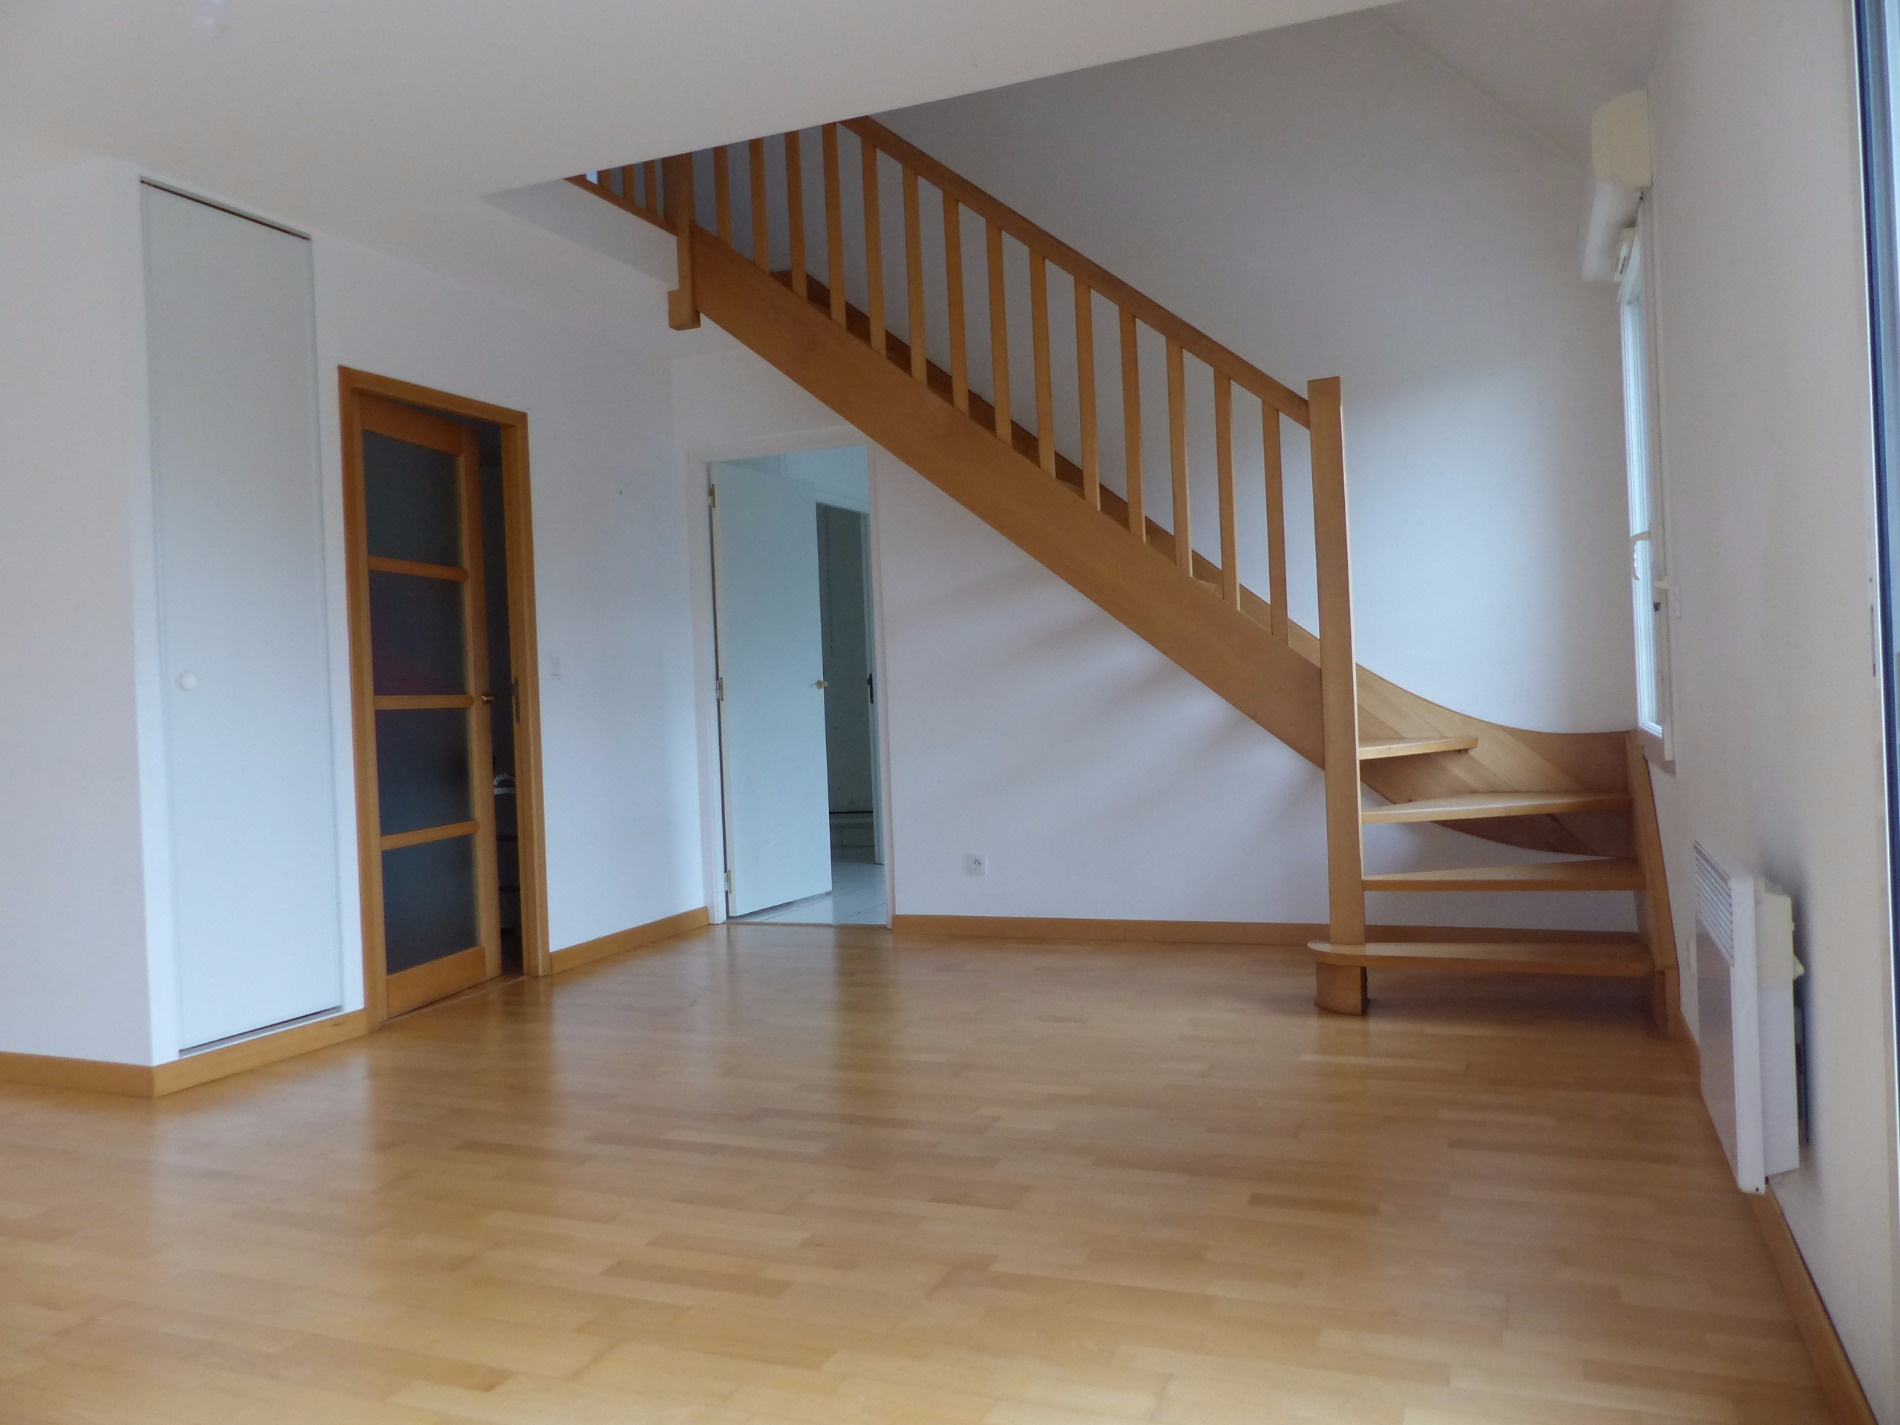 A vendre appartement amiens for Garage ad amiens